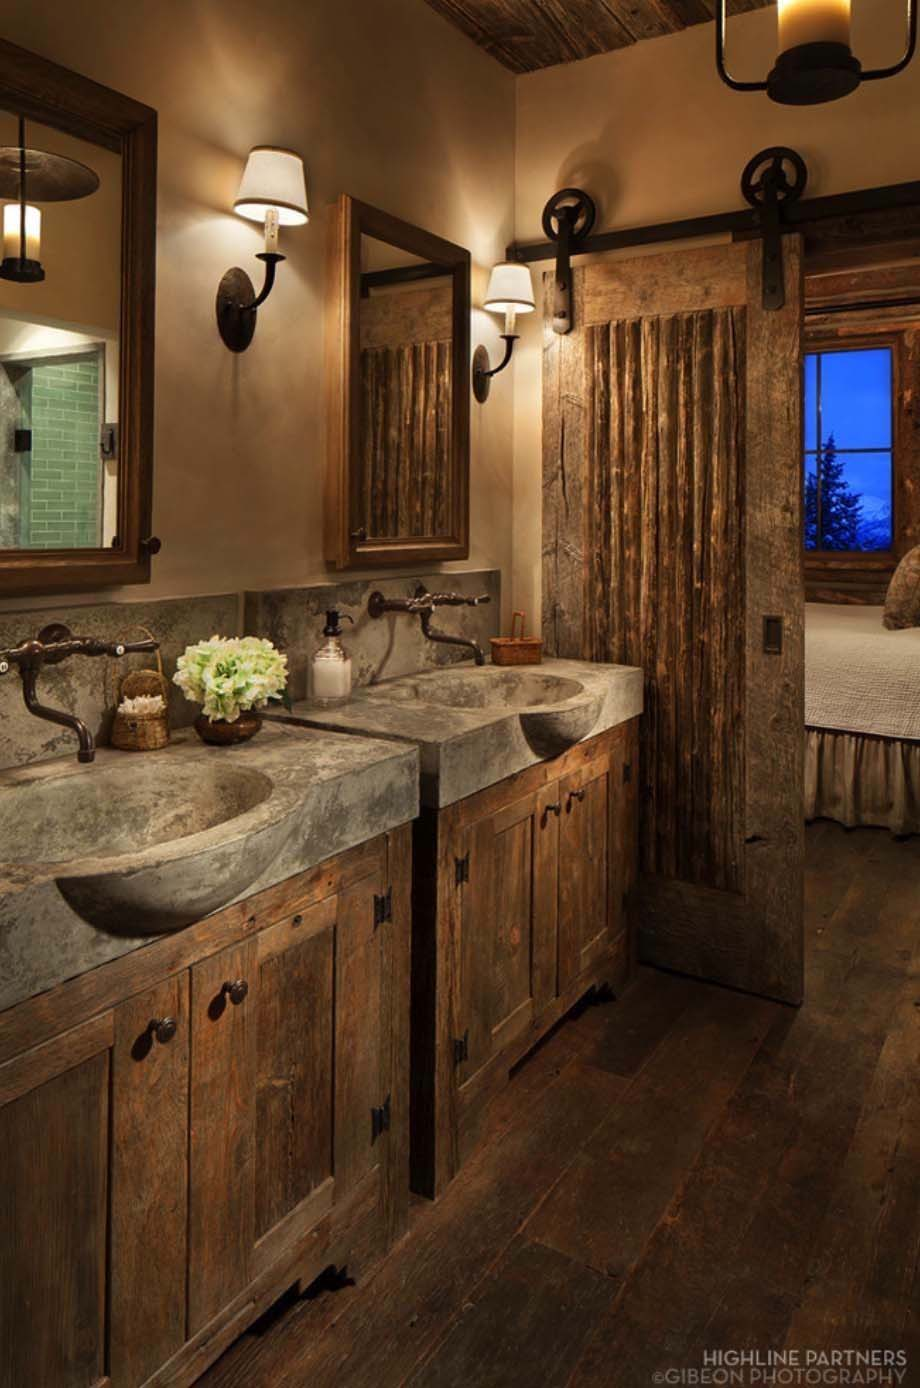 Bathroom Decor Artwork : Best rustic bathroom design and decor ideas for